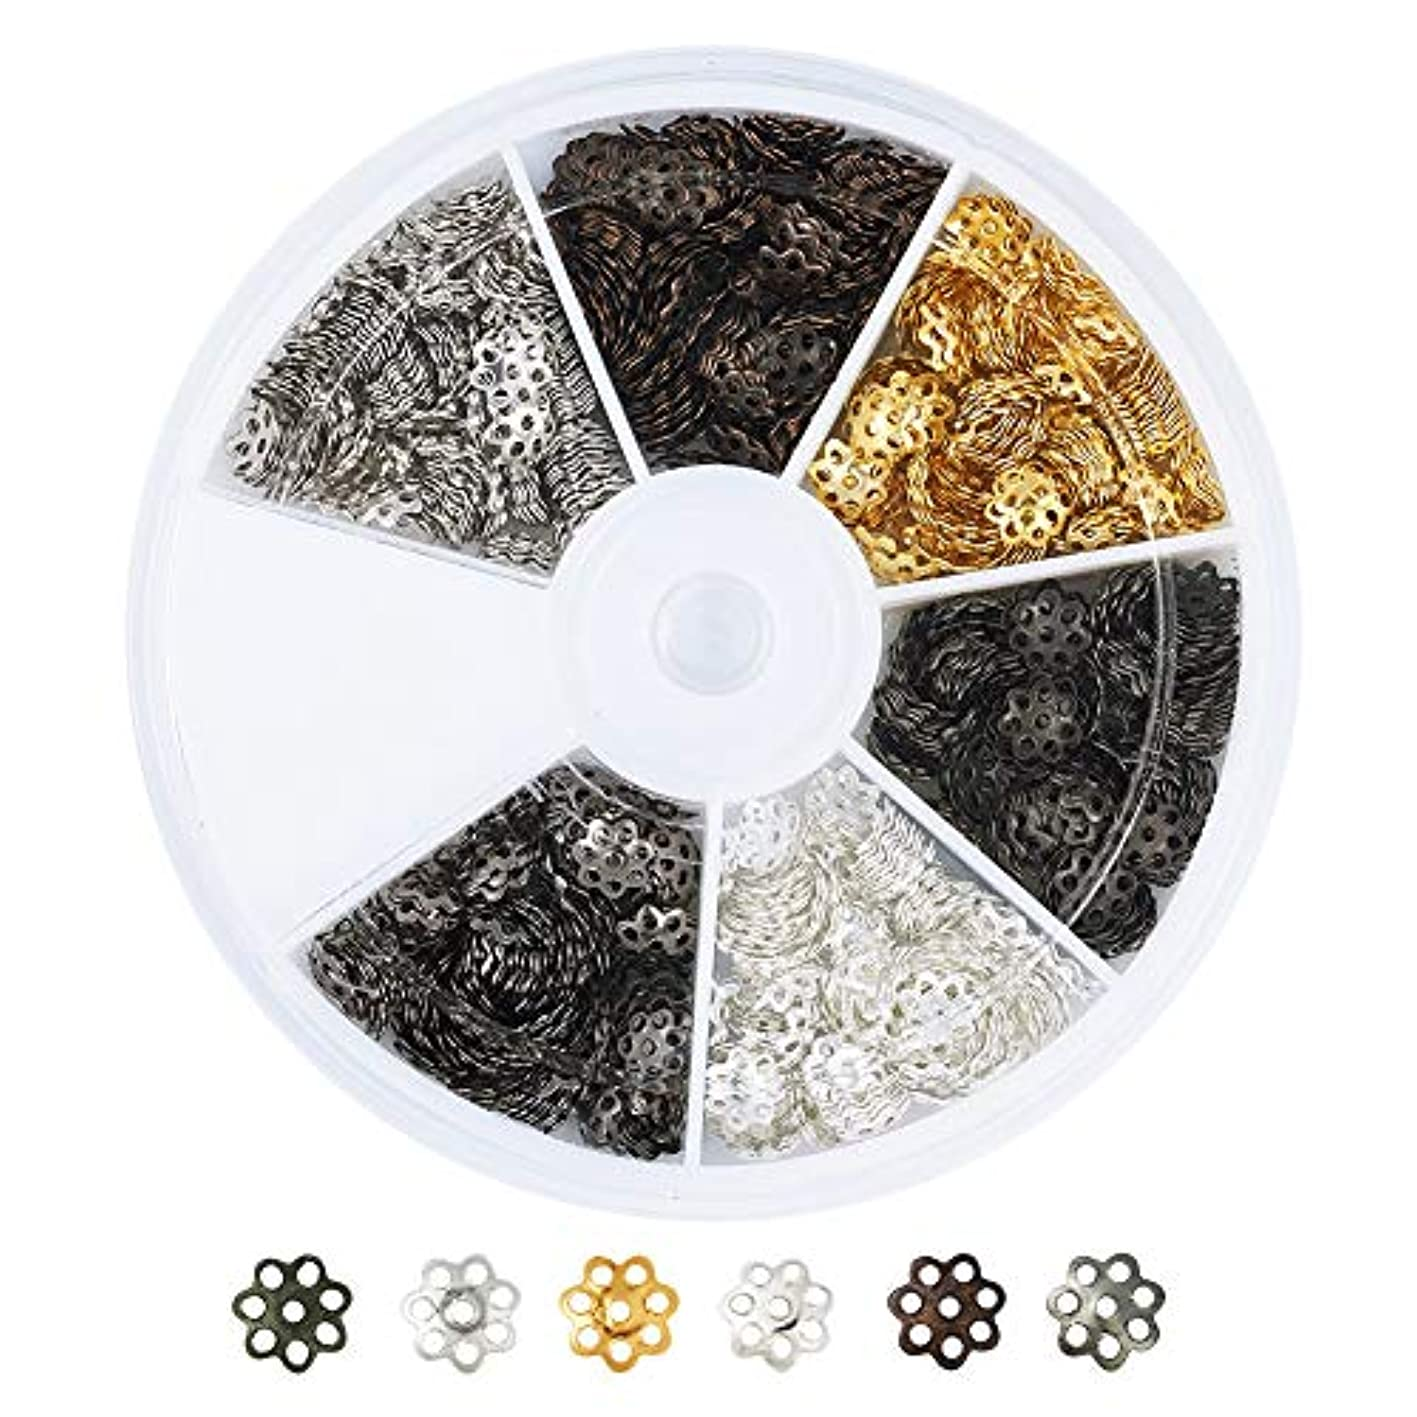 Pandahall 1200pcs/box 6 Colors Iron Filigree Flower Bead Caps End Caps 6mm in Diameter for Jewelry Making with a 6-Grid Container pvxnazcdbwc680